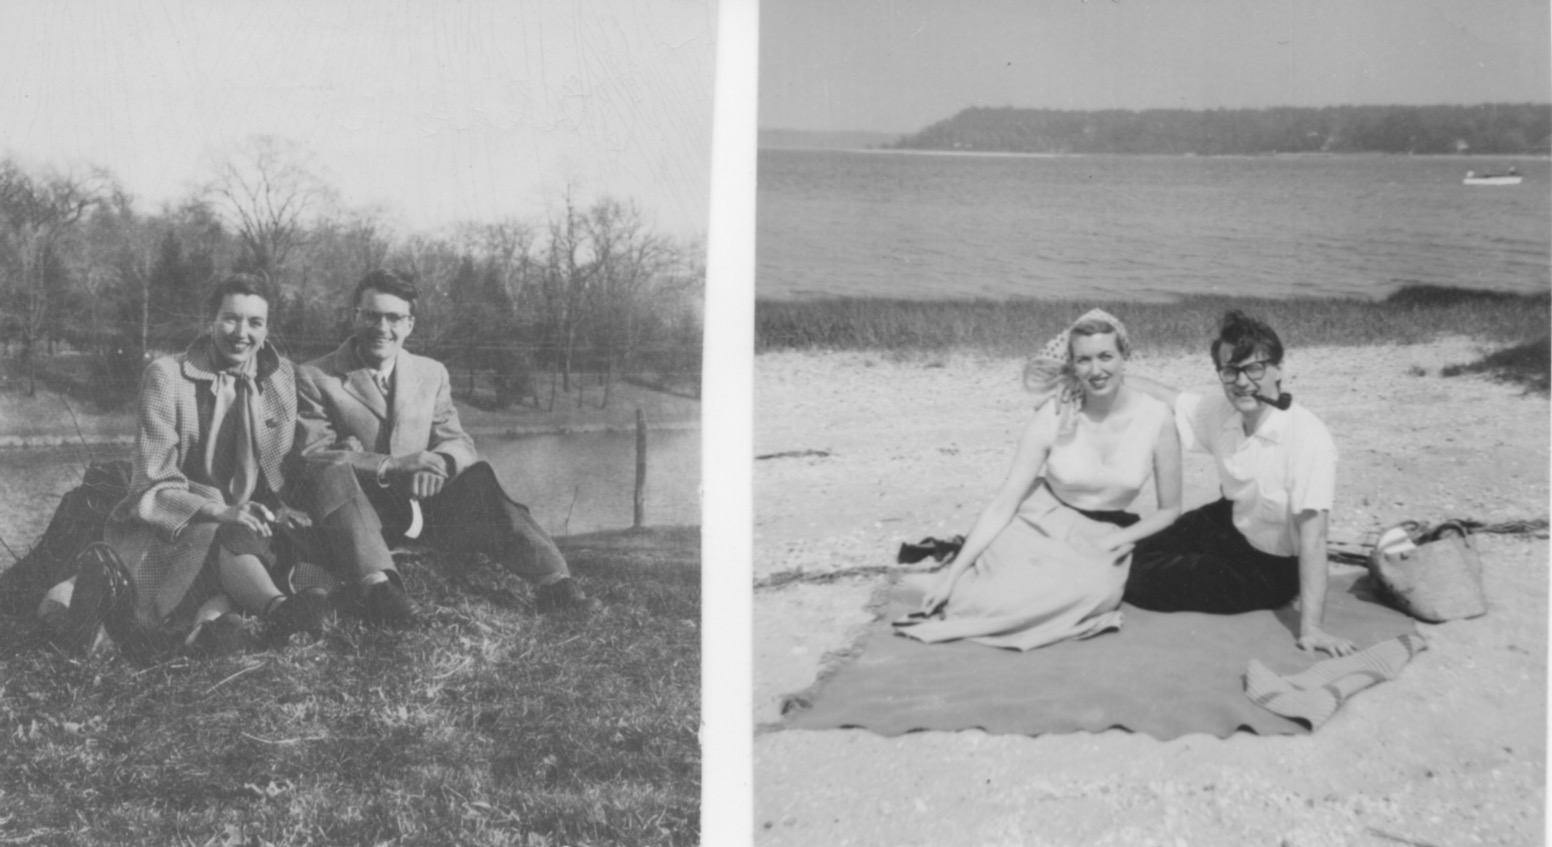 Josette and Imero when they first met in New York City, 1950(L) and visiting Maine in later years(R)